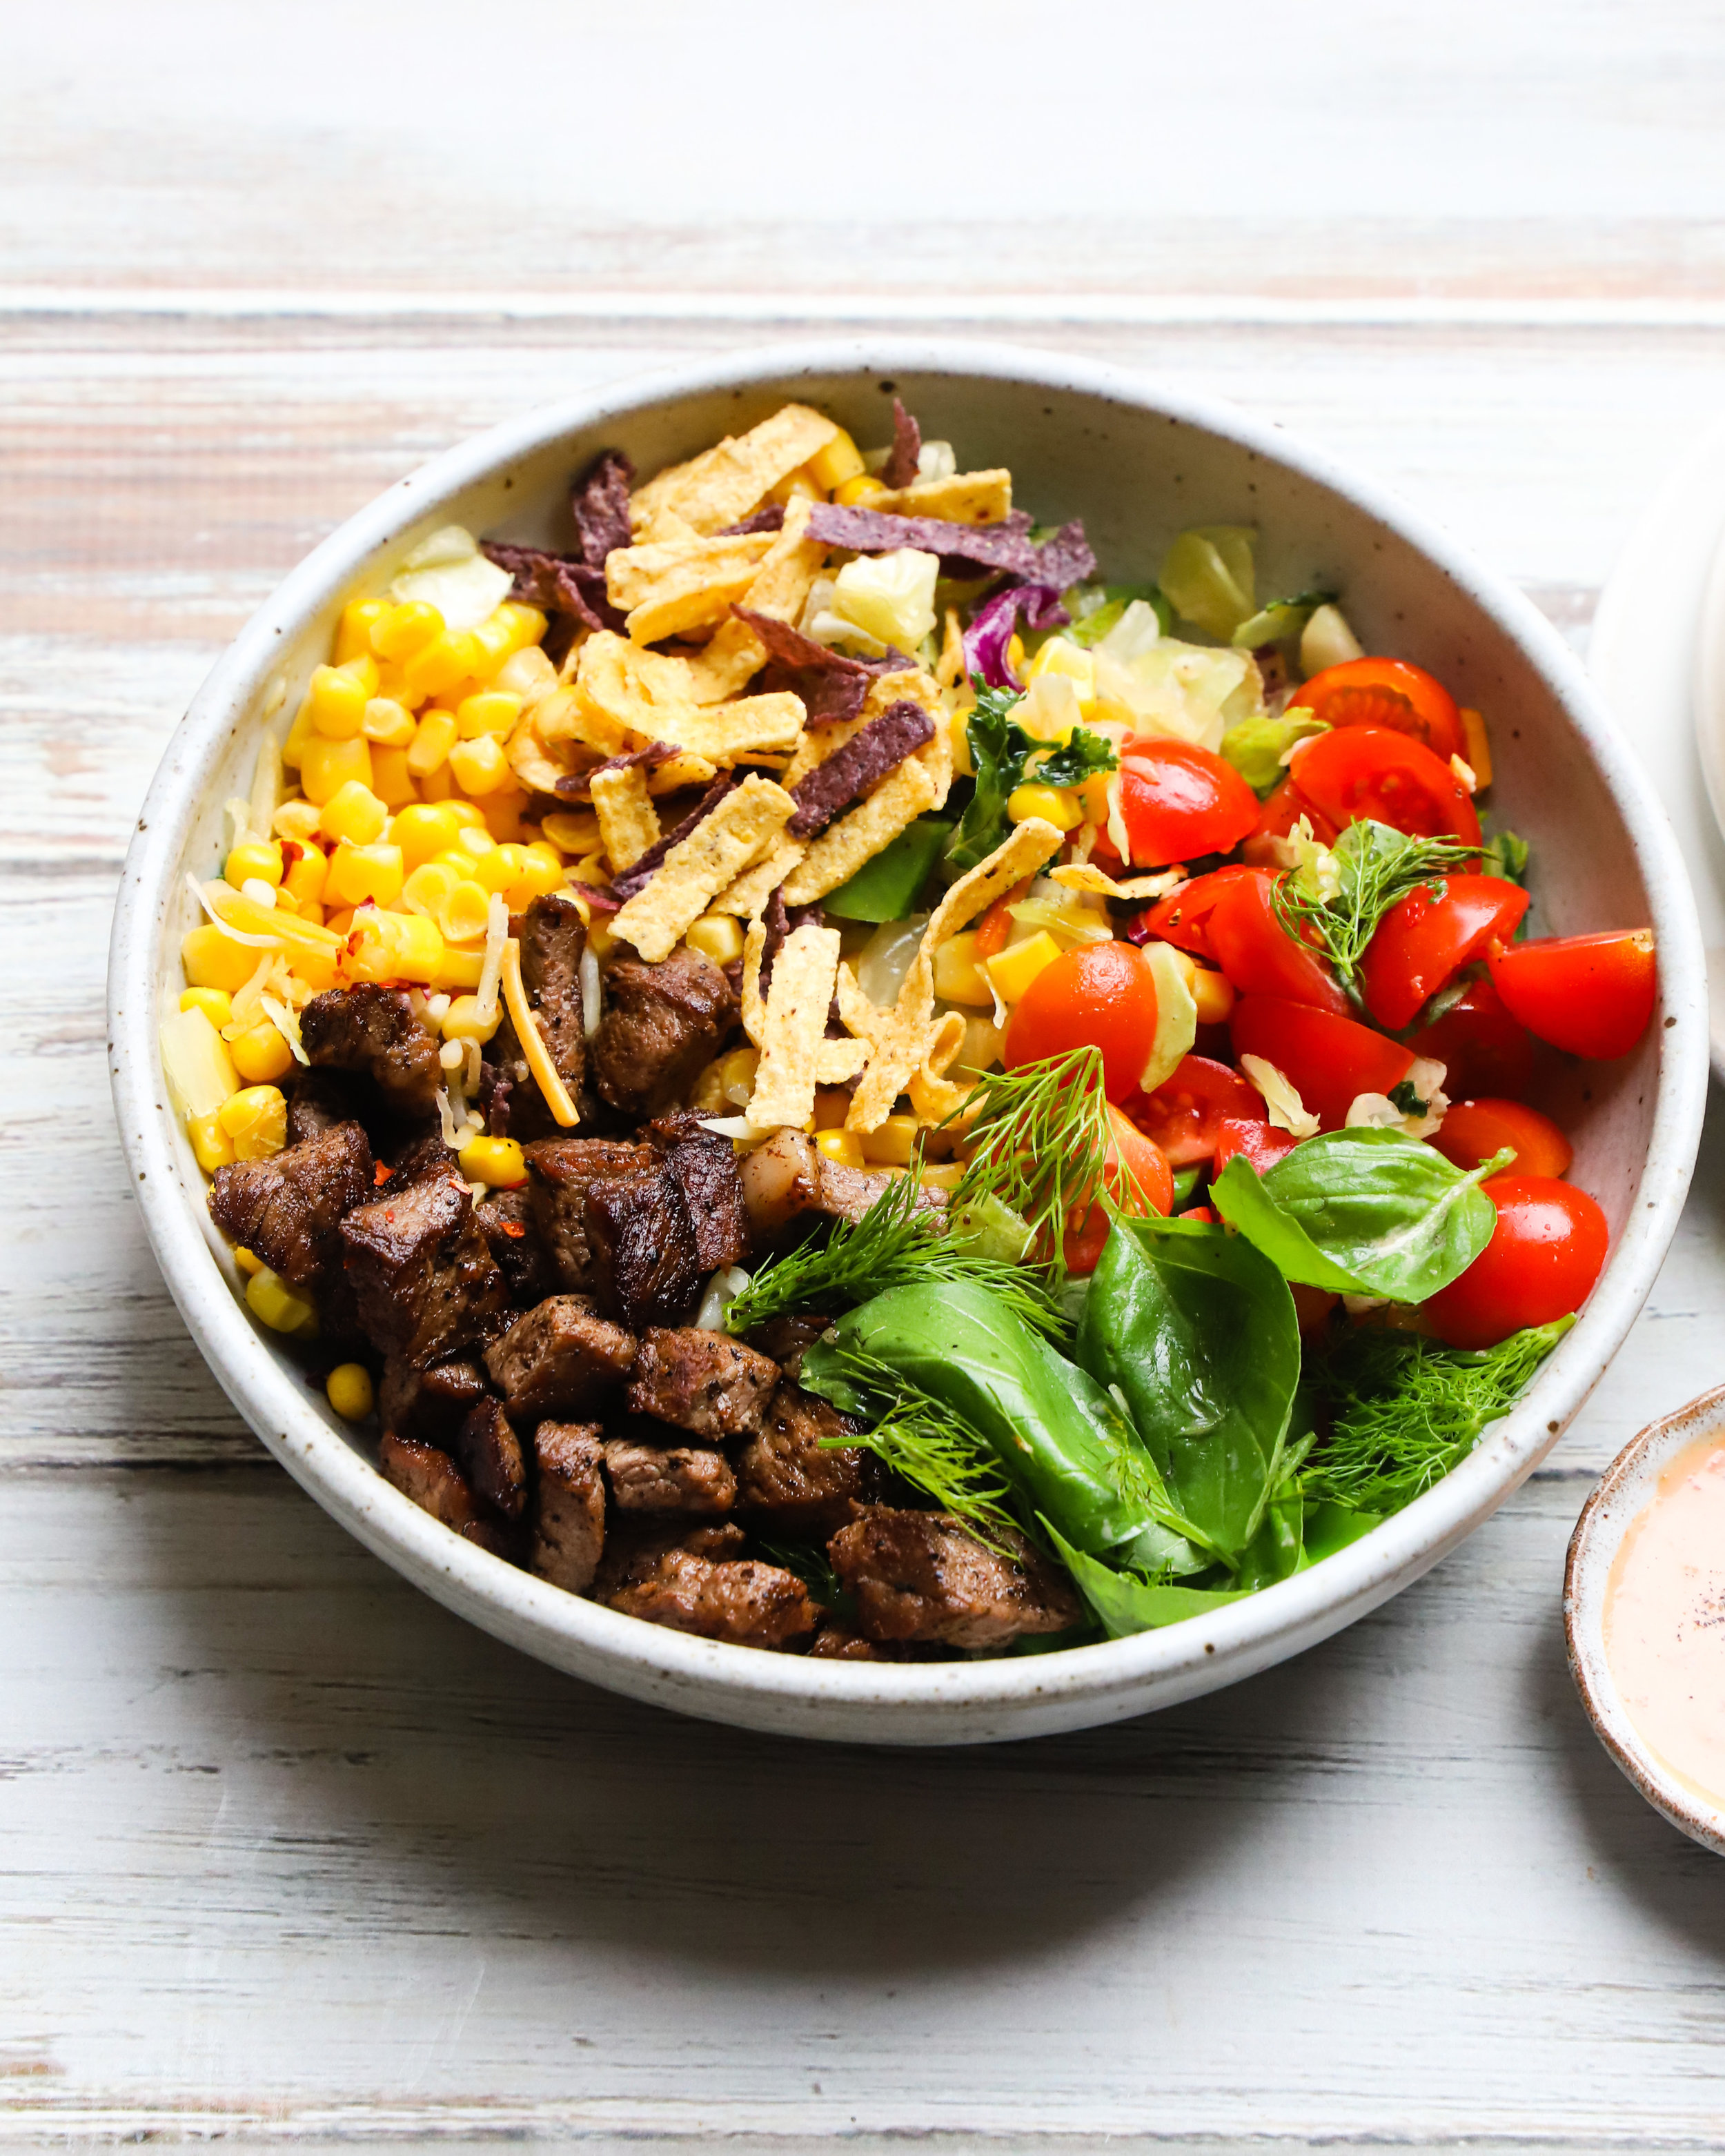 Lindseyeatsla_Steak_Taco_Salad-10.jpg